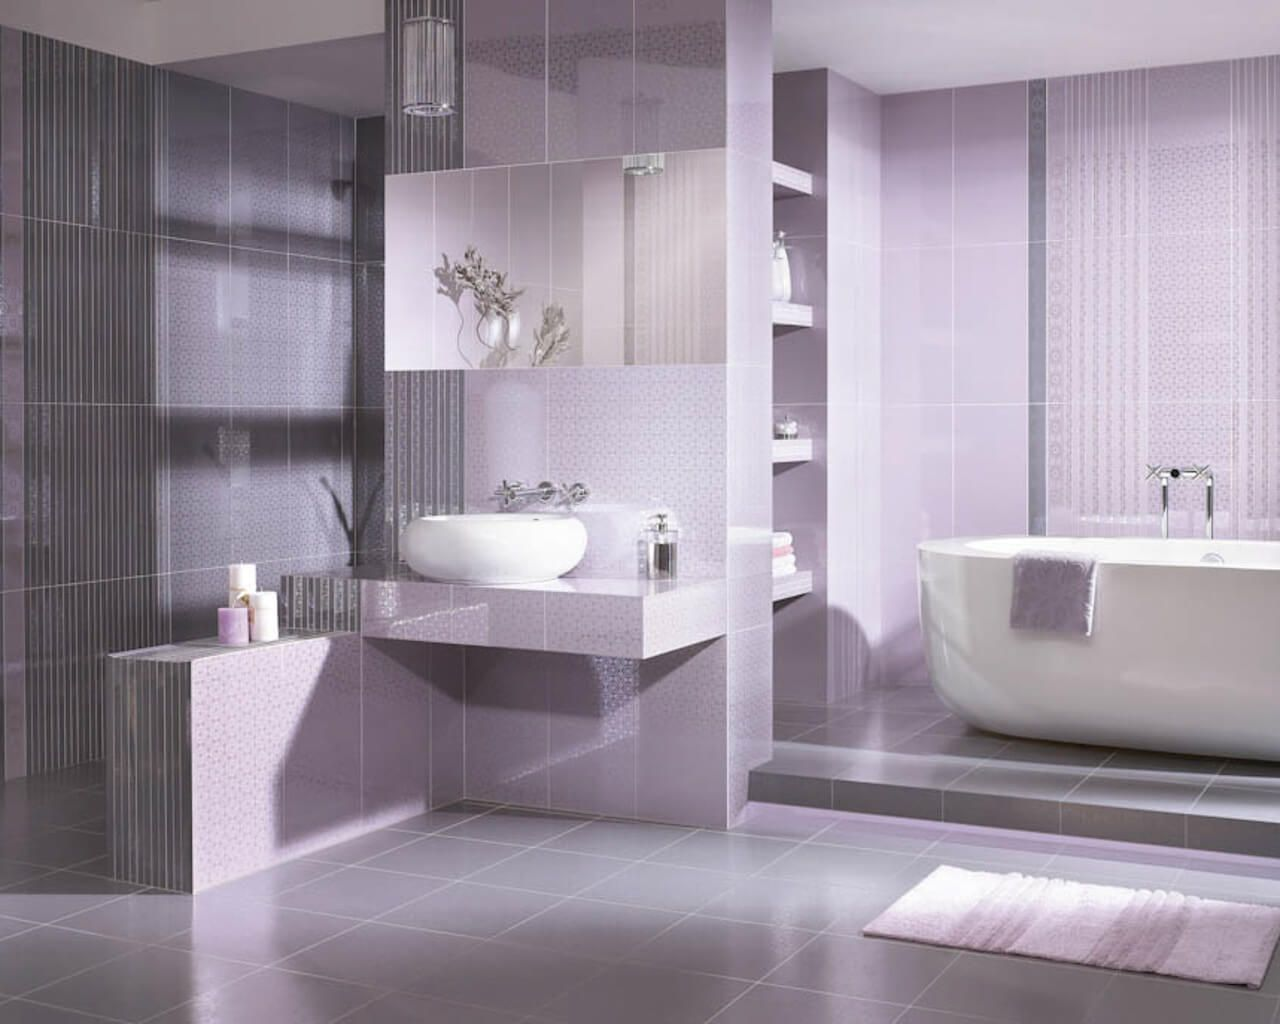 Piume Bianco Bathroom Tiles With Delicate Graphics